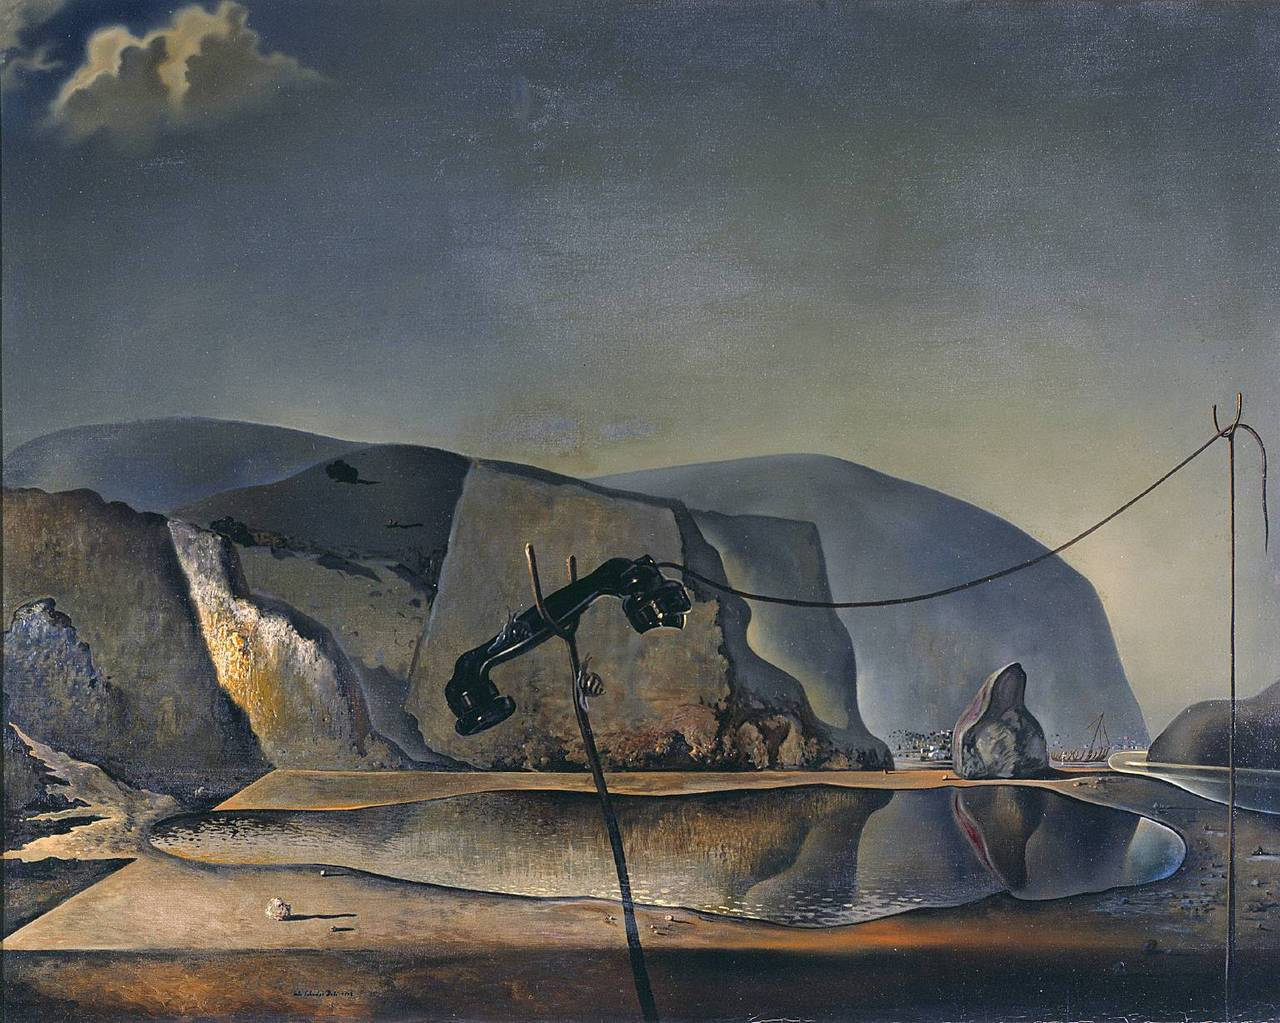 artpedia:  Salvador Dalí - Mountain Lake, 1938. Oil on canvas  From the Tate Gallery, London:  Mountain Lake demonstrates Dalí's use of the multiple image: the lake can simultaneously be seen as a fish. By such doubling he sought to challenge rationality. The painting combines personal and public references. His parents visited this lake after the death of their first child, also called Salvador. Dalí seems to have been haunted by the death of his namesake brother whom he never knew. The disconnected telephone brings the image into the present by alluding to negotiations between Neville Chamberlain, the British Prime Minister, and Hitler over the German annexation of the Sudetenland in September 1938.